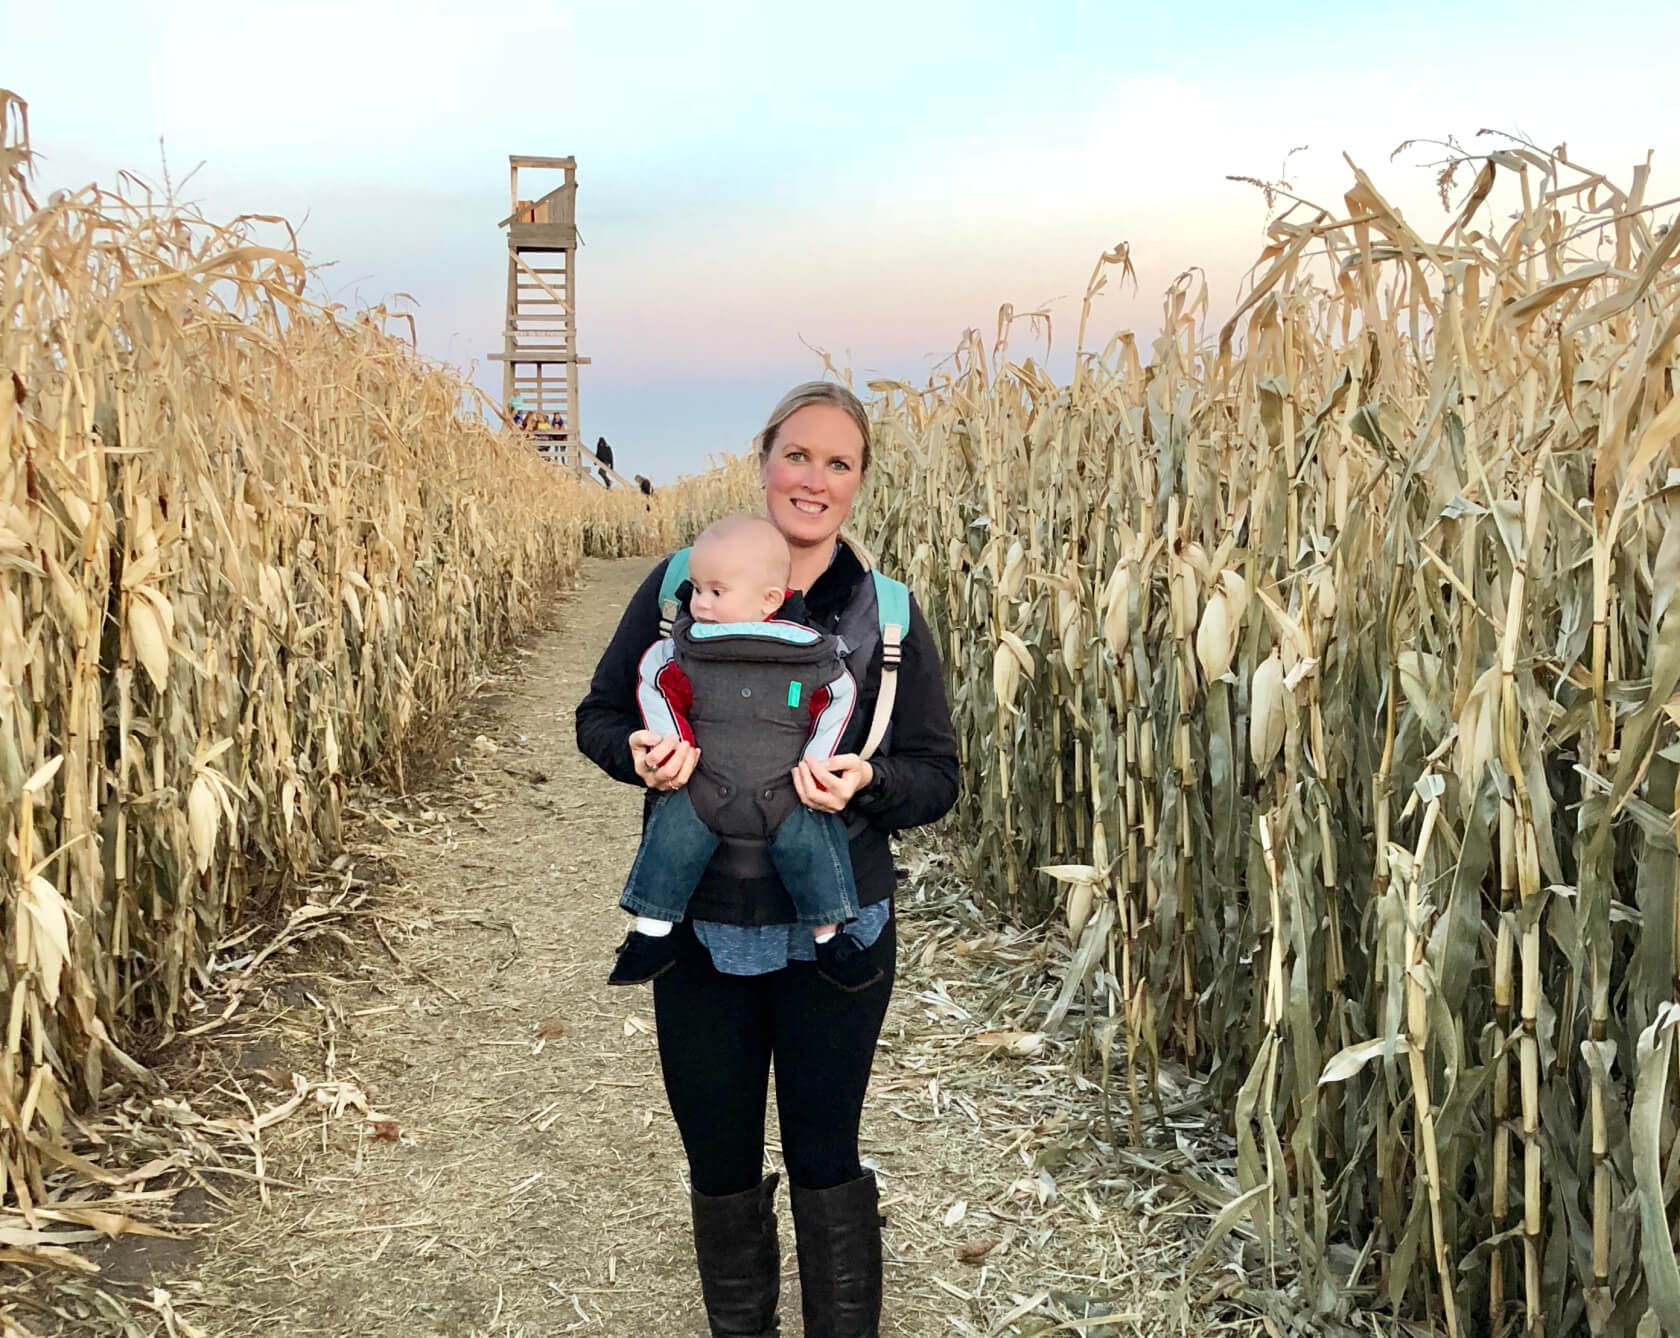 A Fun Filled Evening at Lethbridge Corn Maze